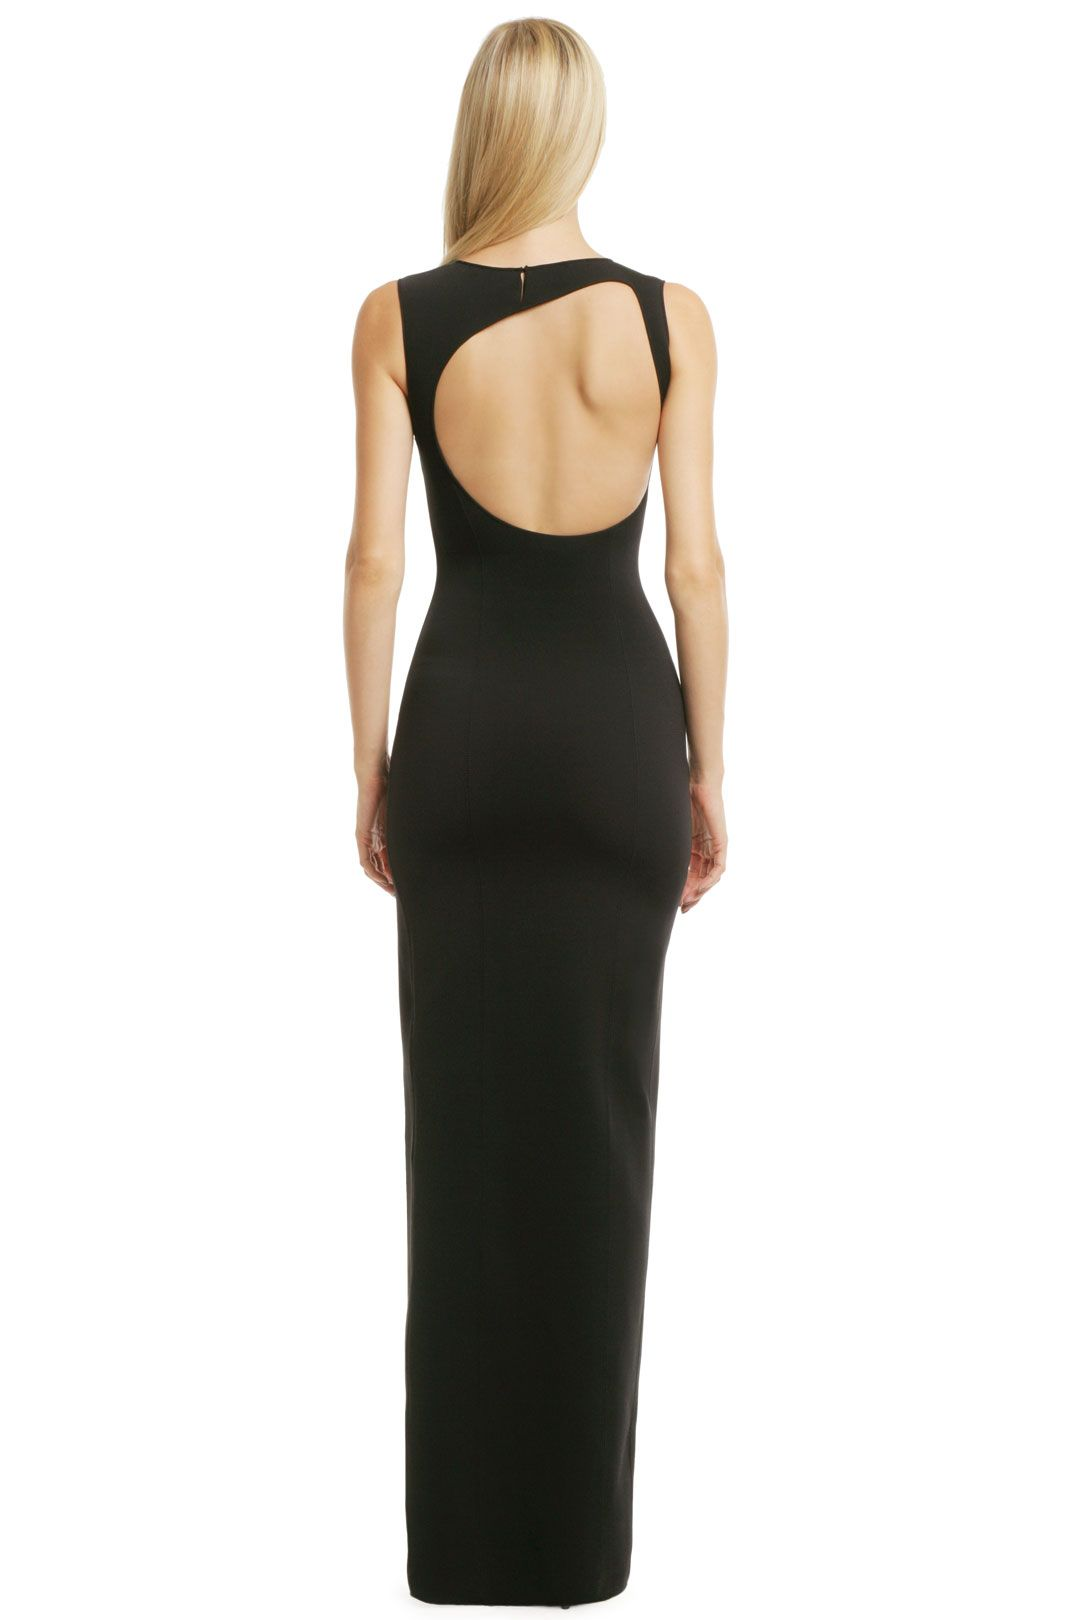 Blumarine You Are Dismissed Gown